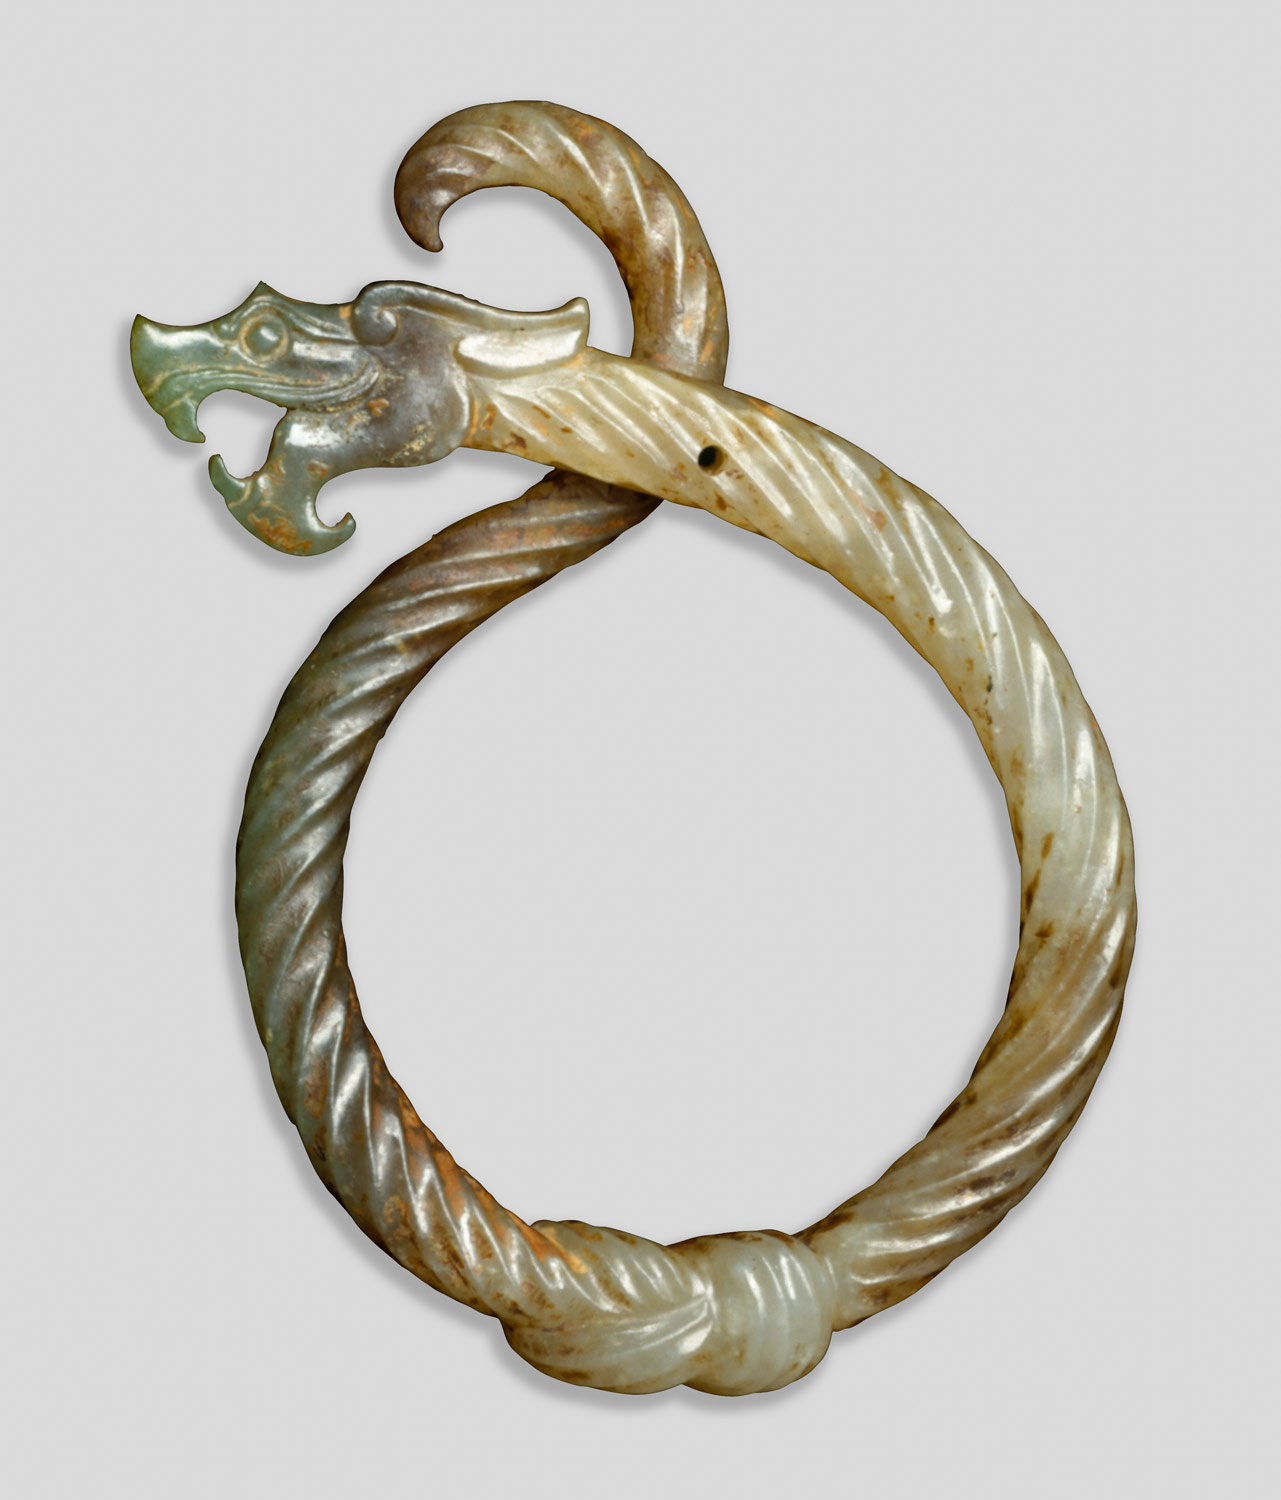 Pendant in the form of knotted dragon